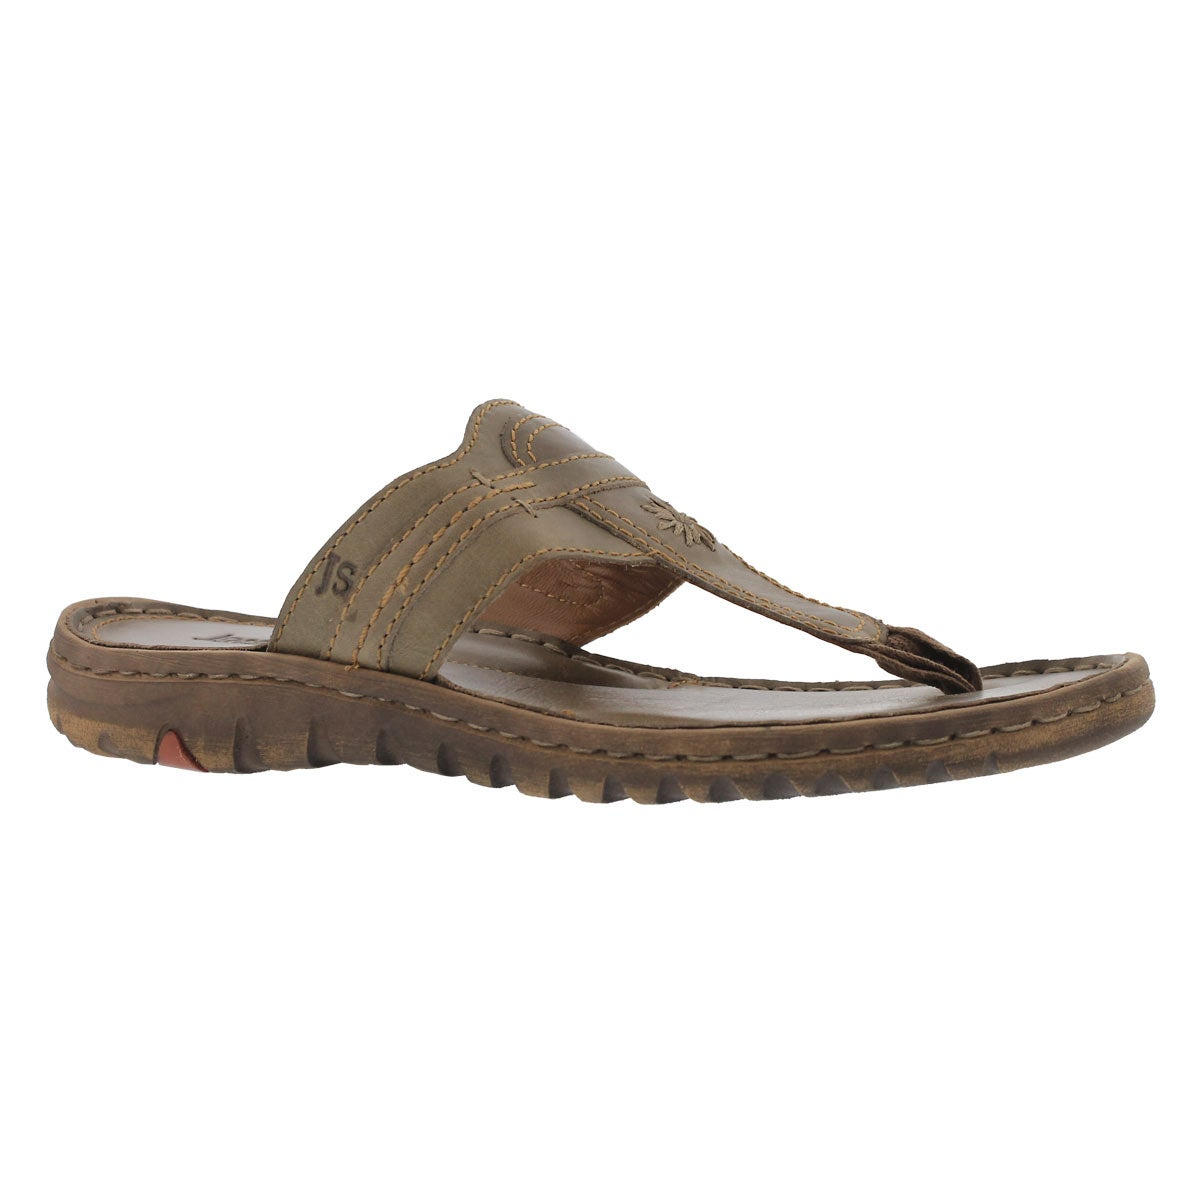 Women's LUCIA 09 olive casual thng sandals